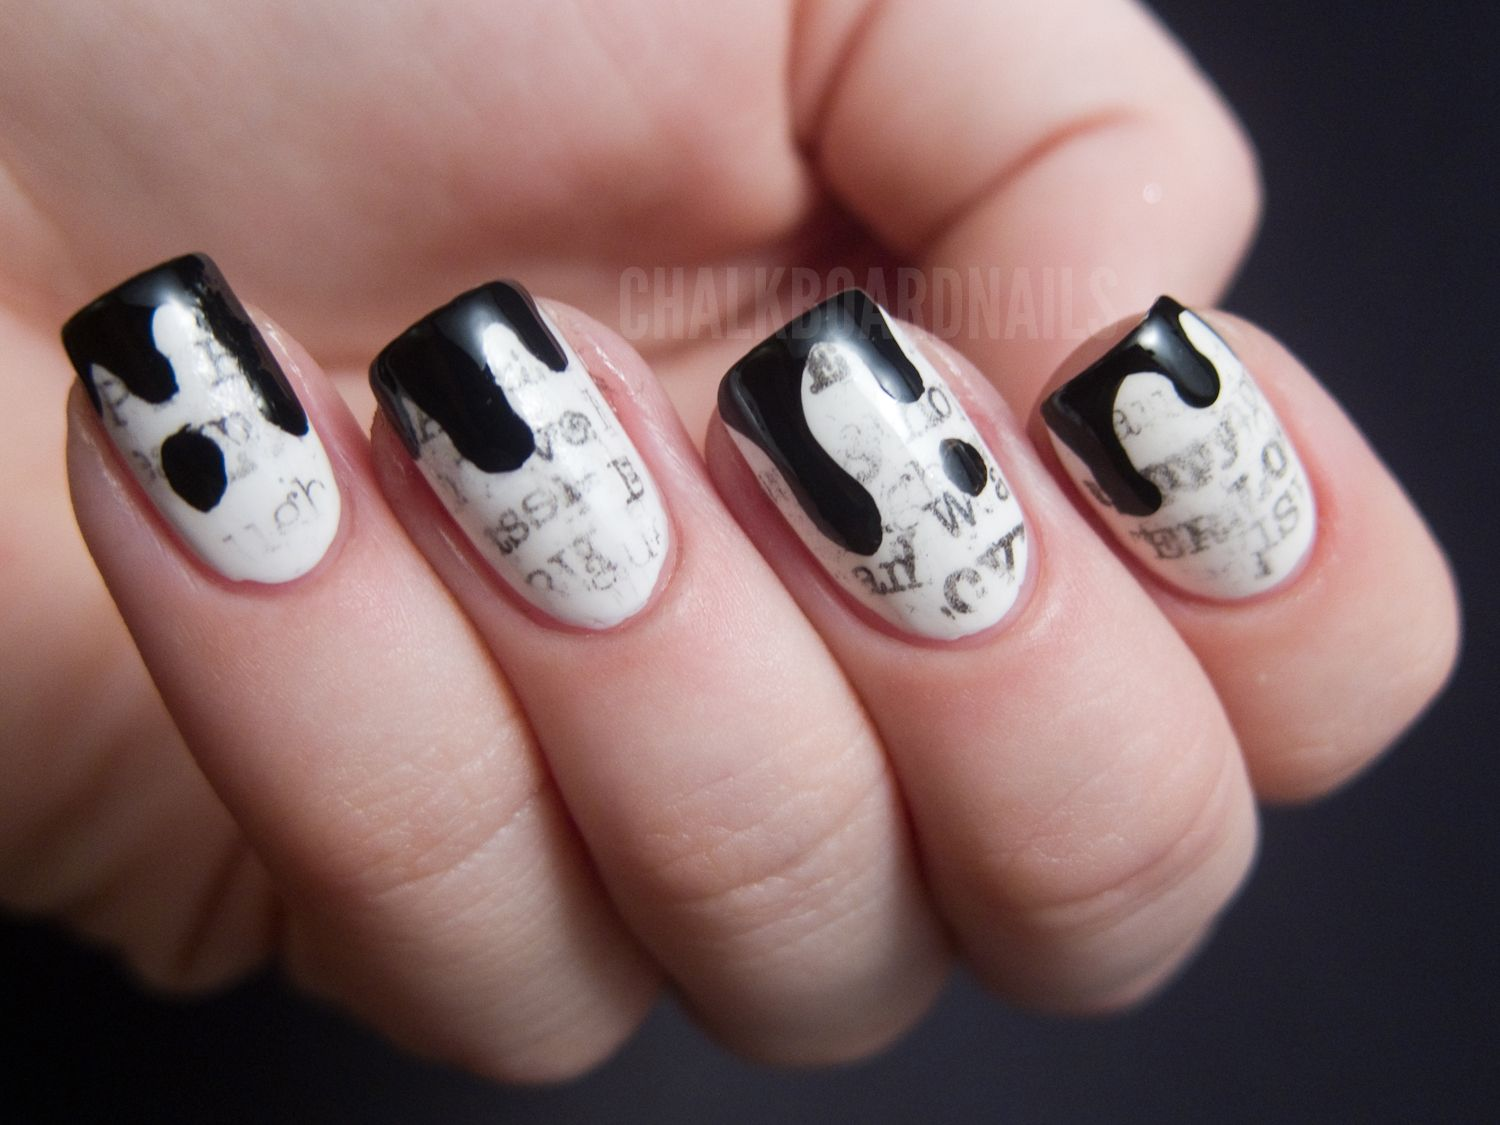 The New Black Typography Set - Daily News | Manicure